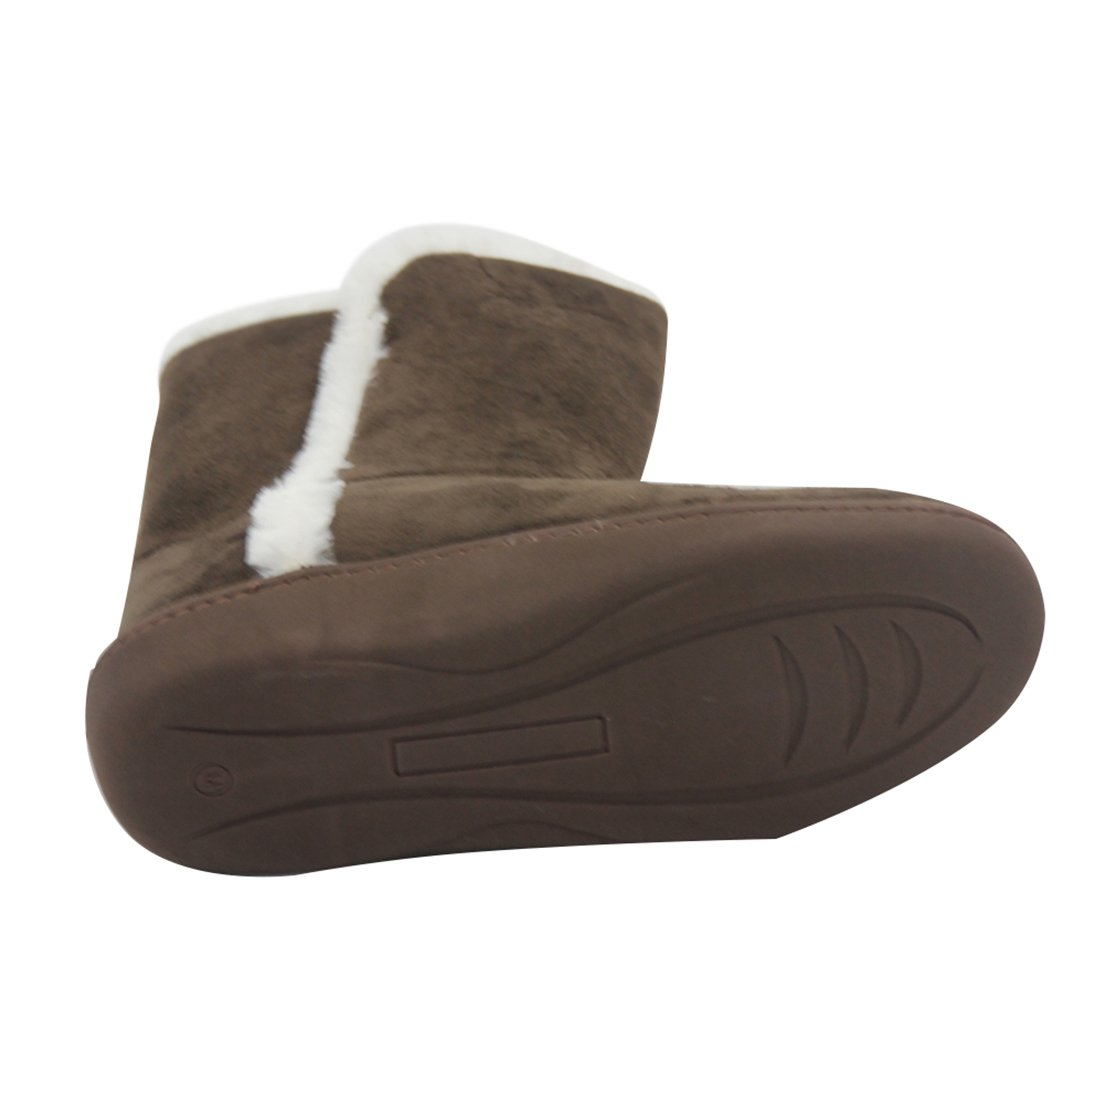 Forfoot Women's Winter Warm Soft Fleece Suede Indoor Slipper Boots House